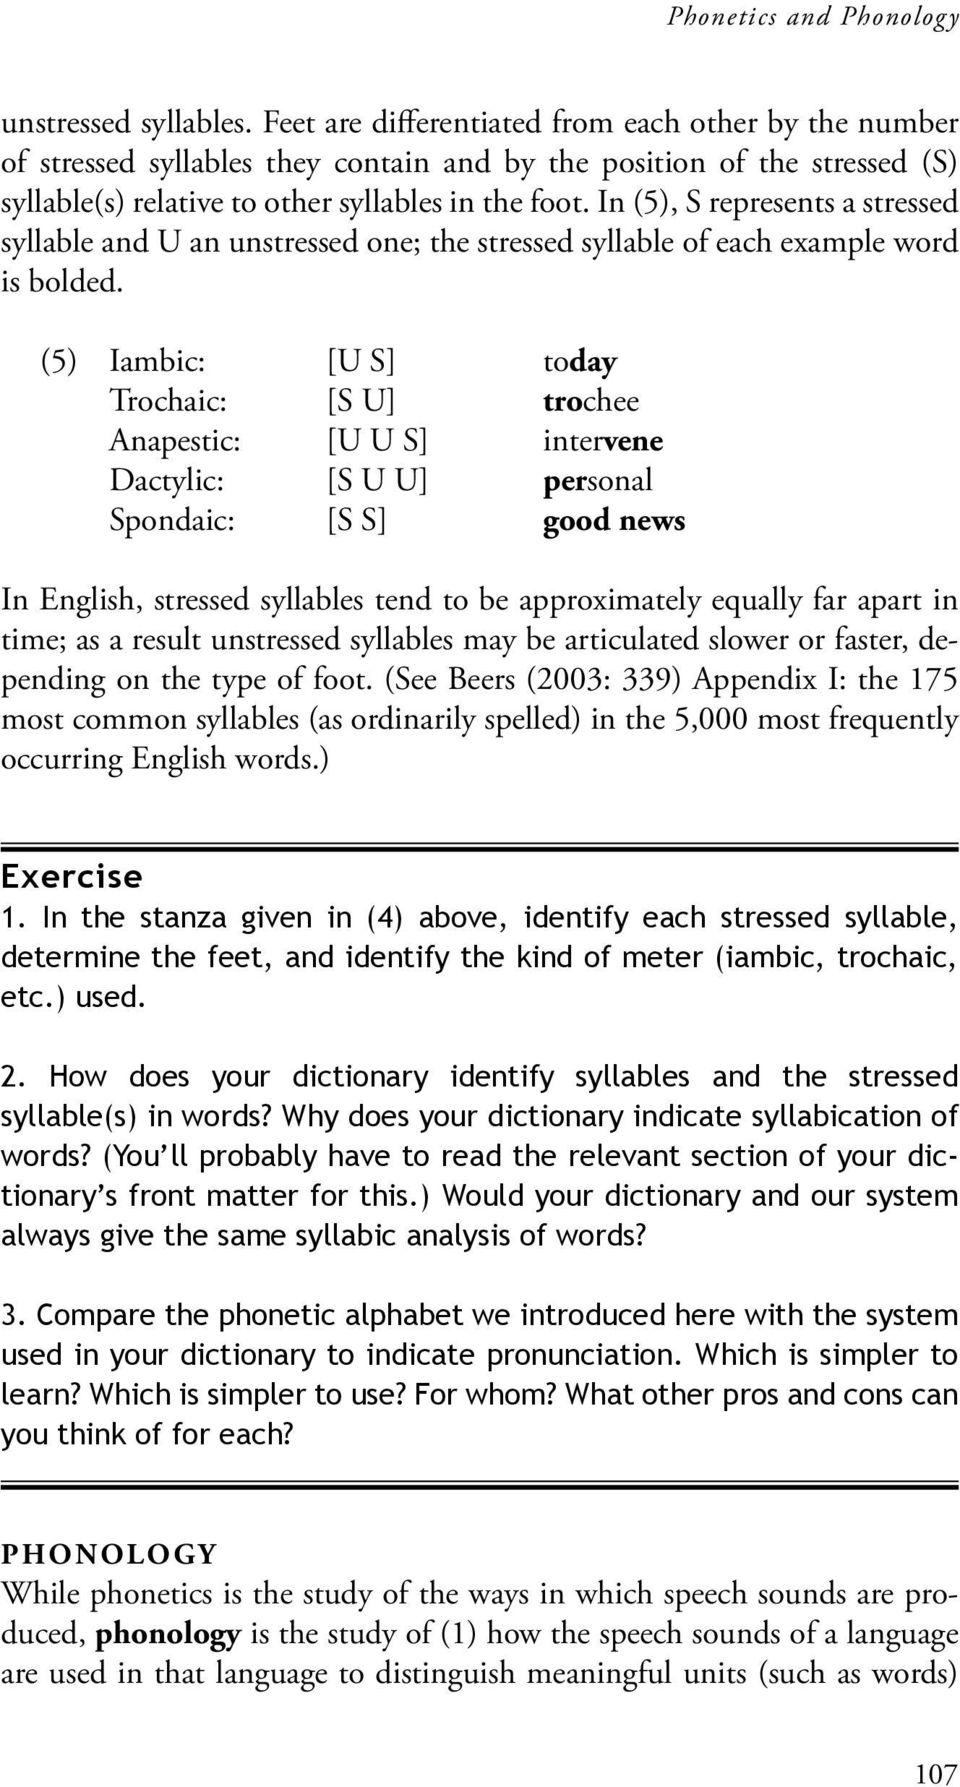 phonology is the study of